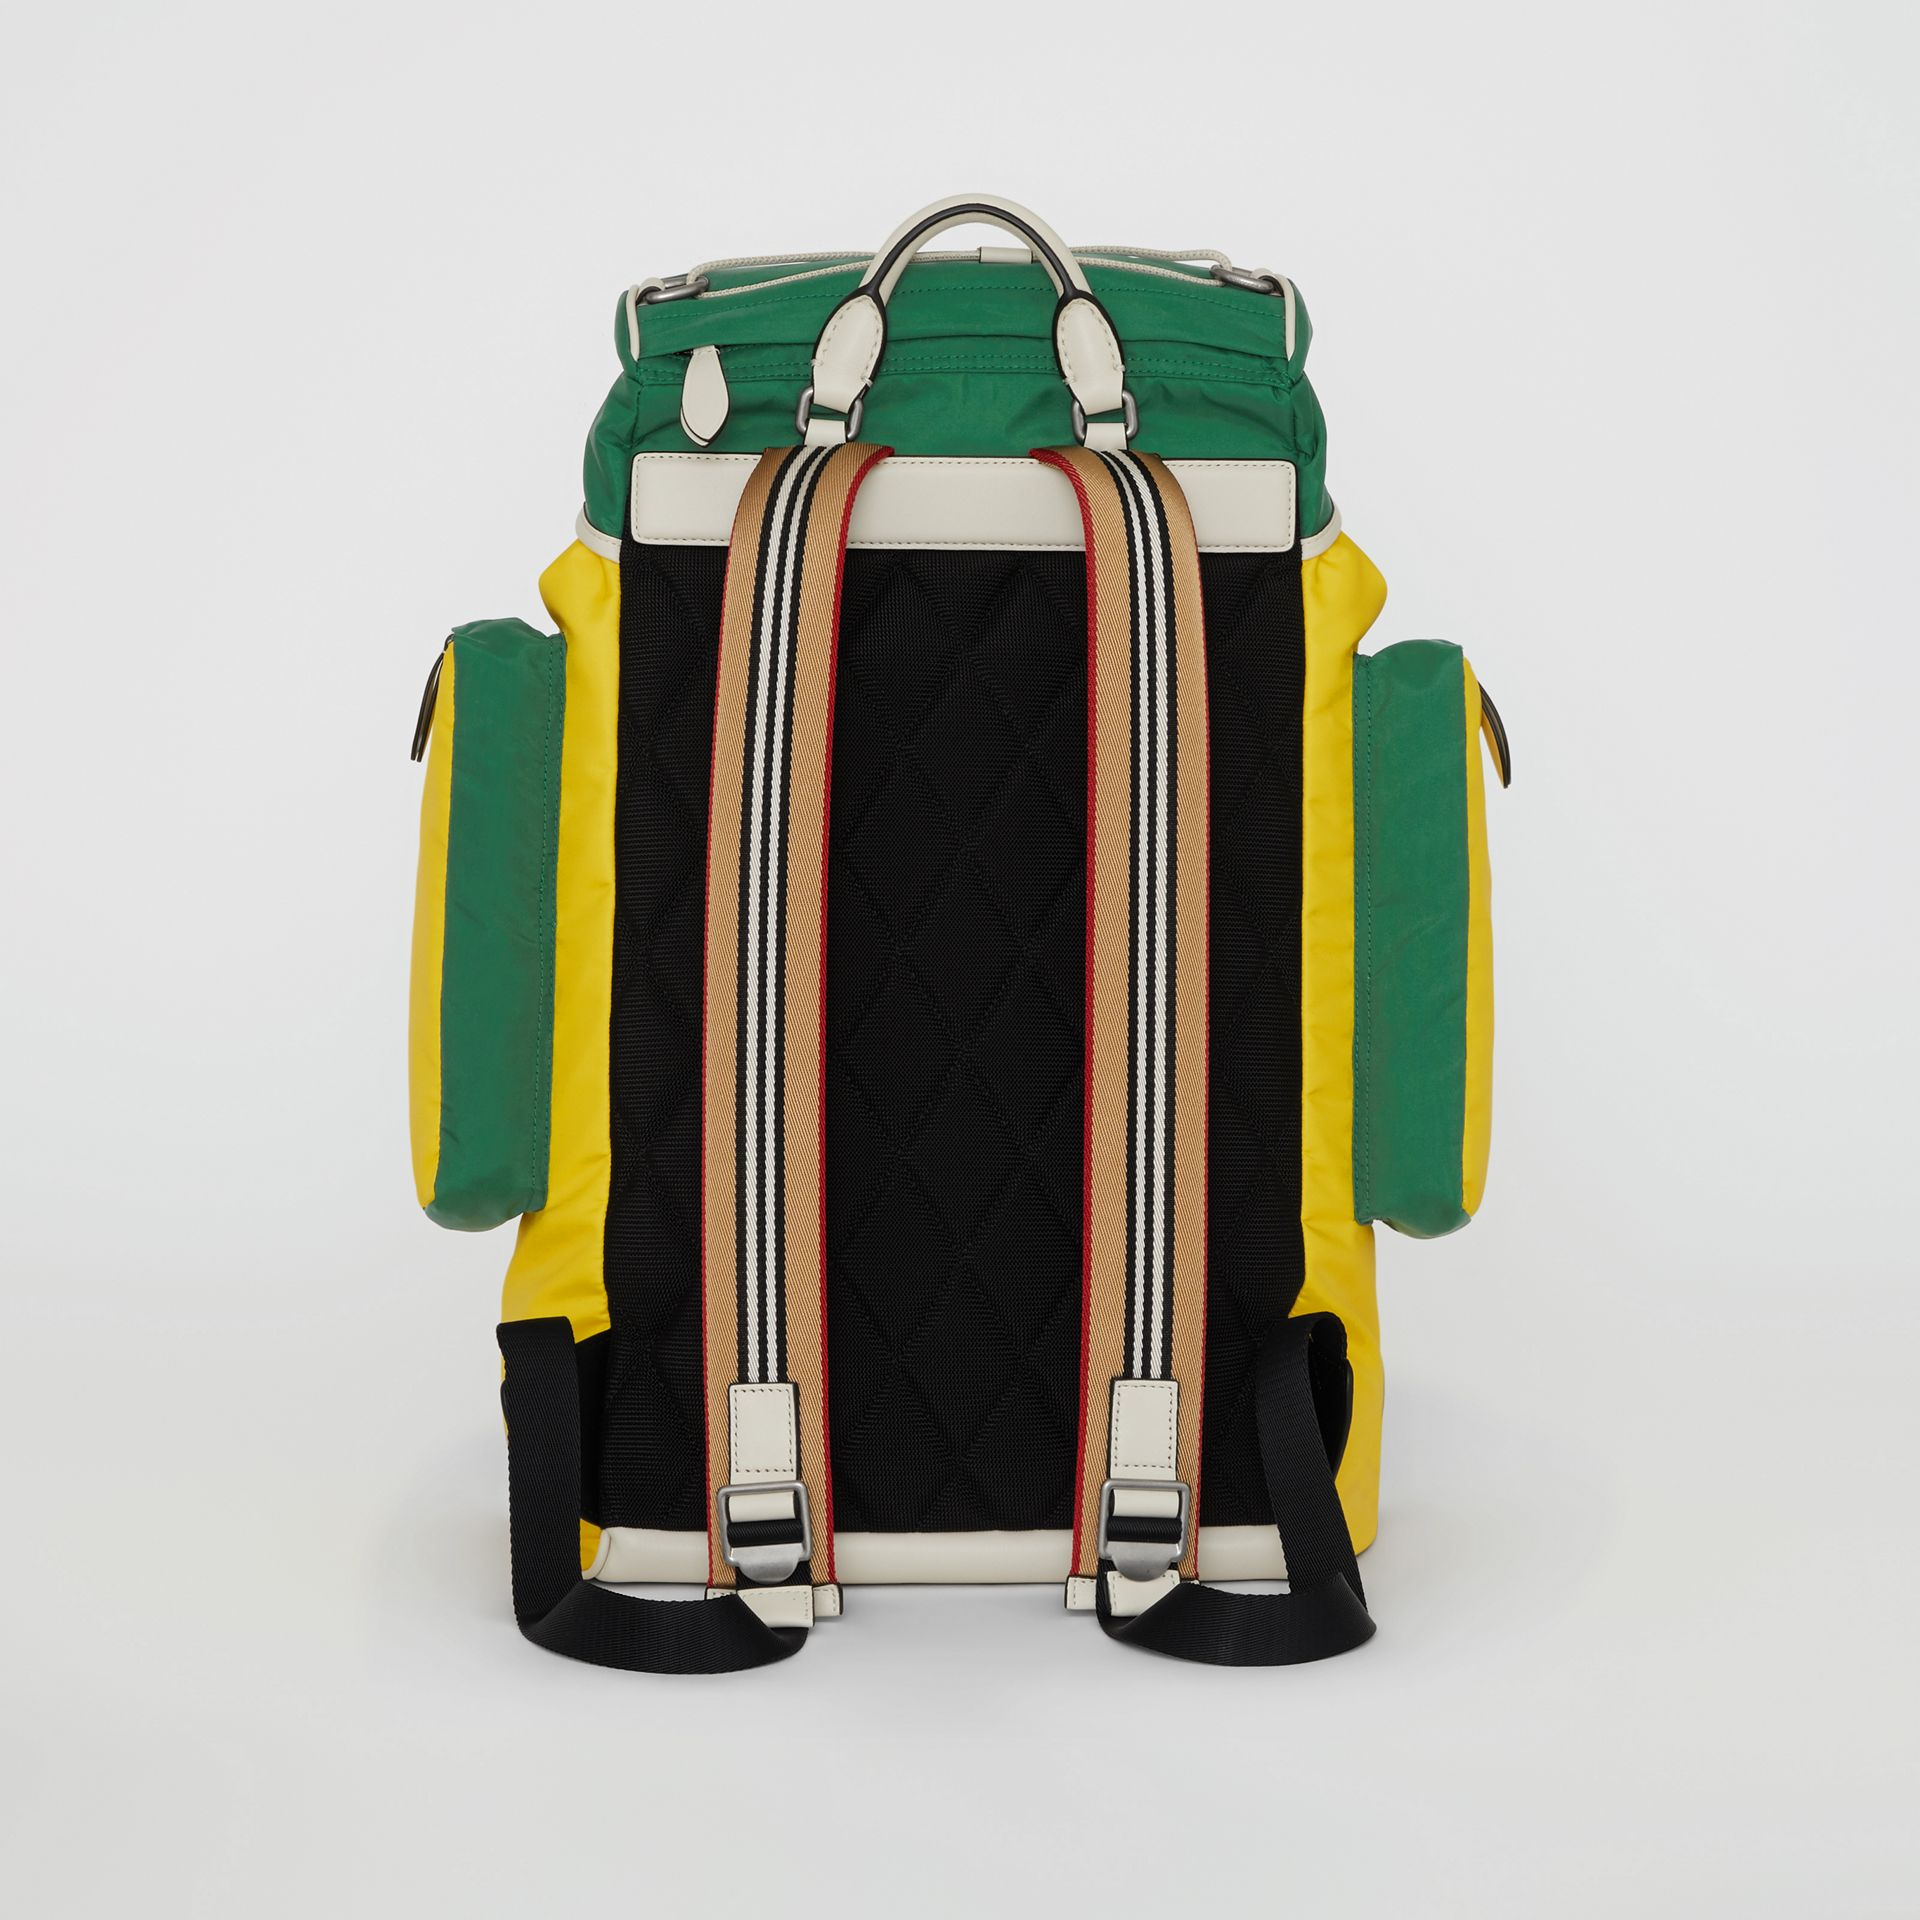 Tri-tone Nylon and Leather Backpack in Pine Green - Men | Burberry Canada - gallery image 5